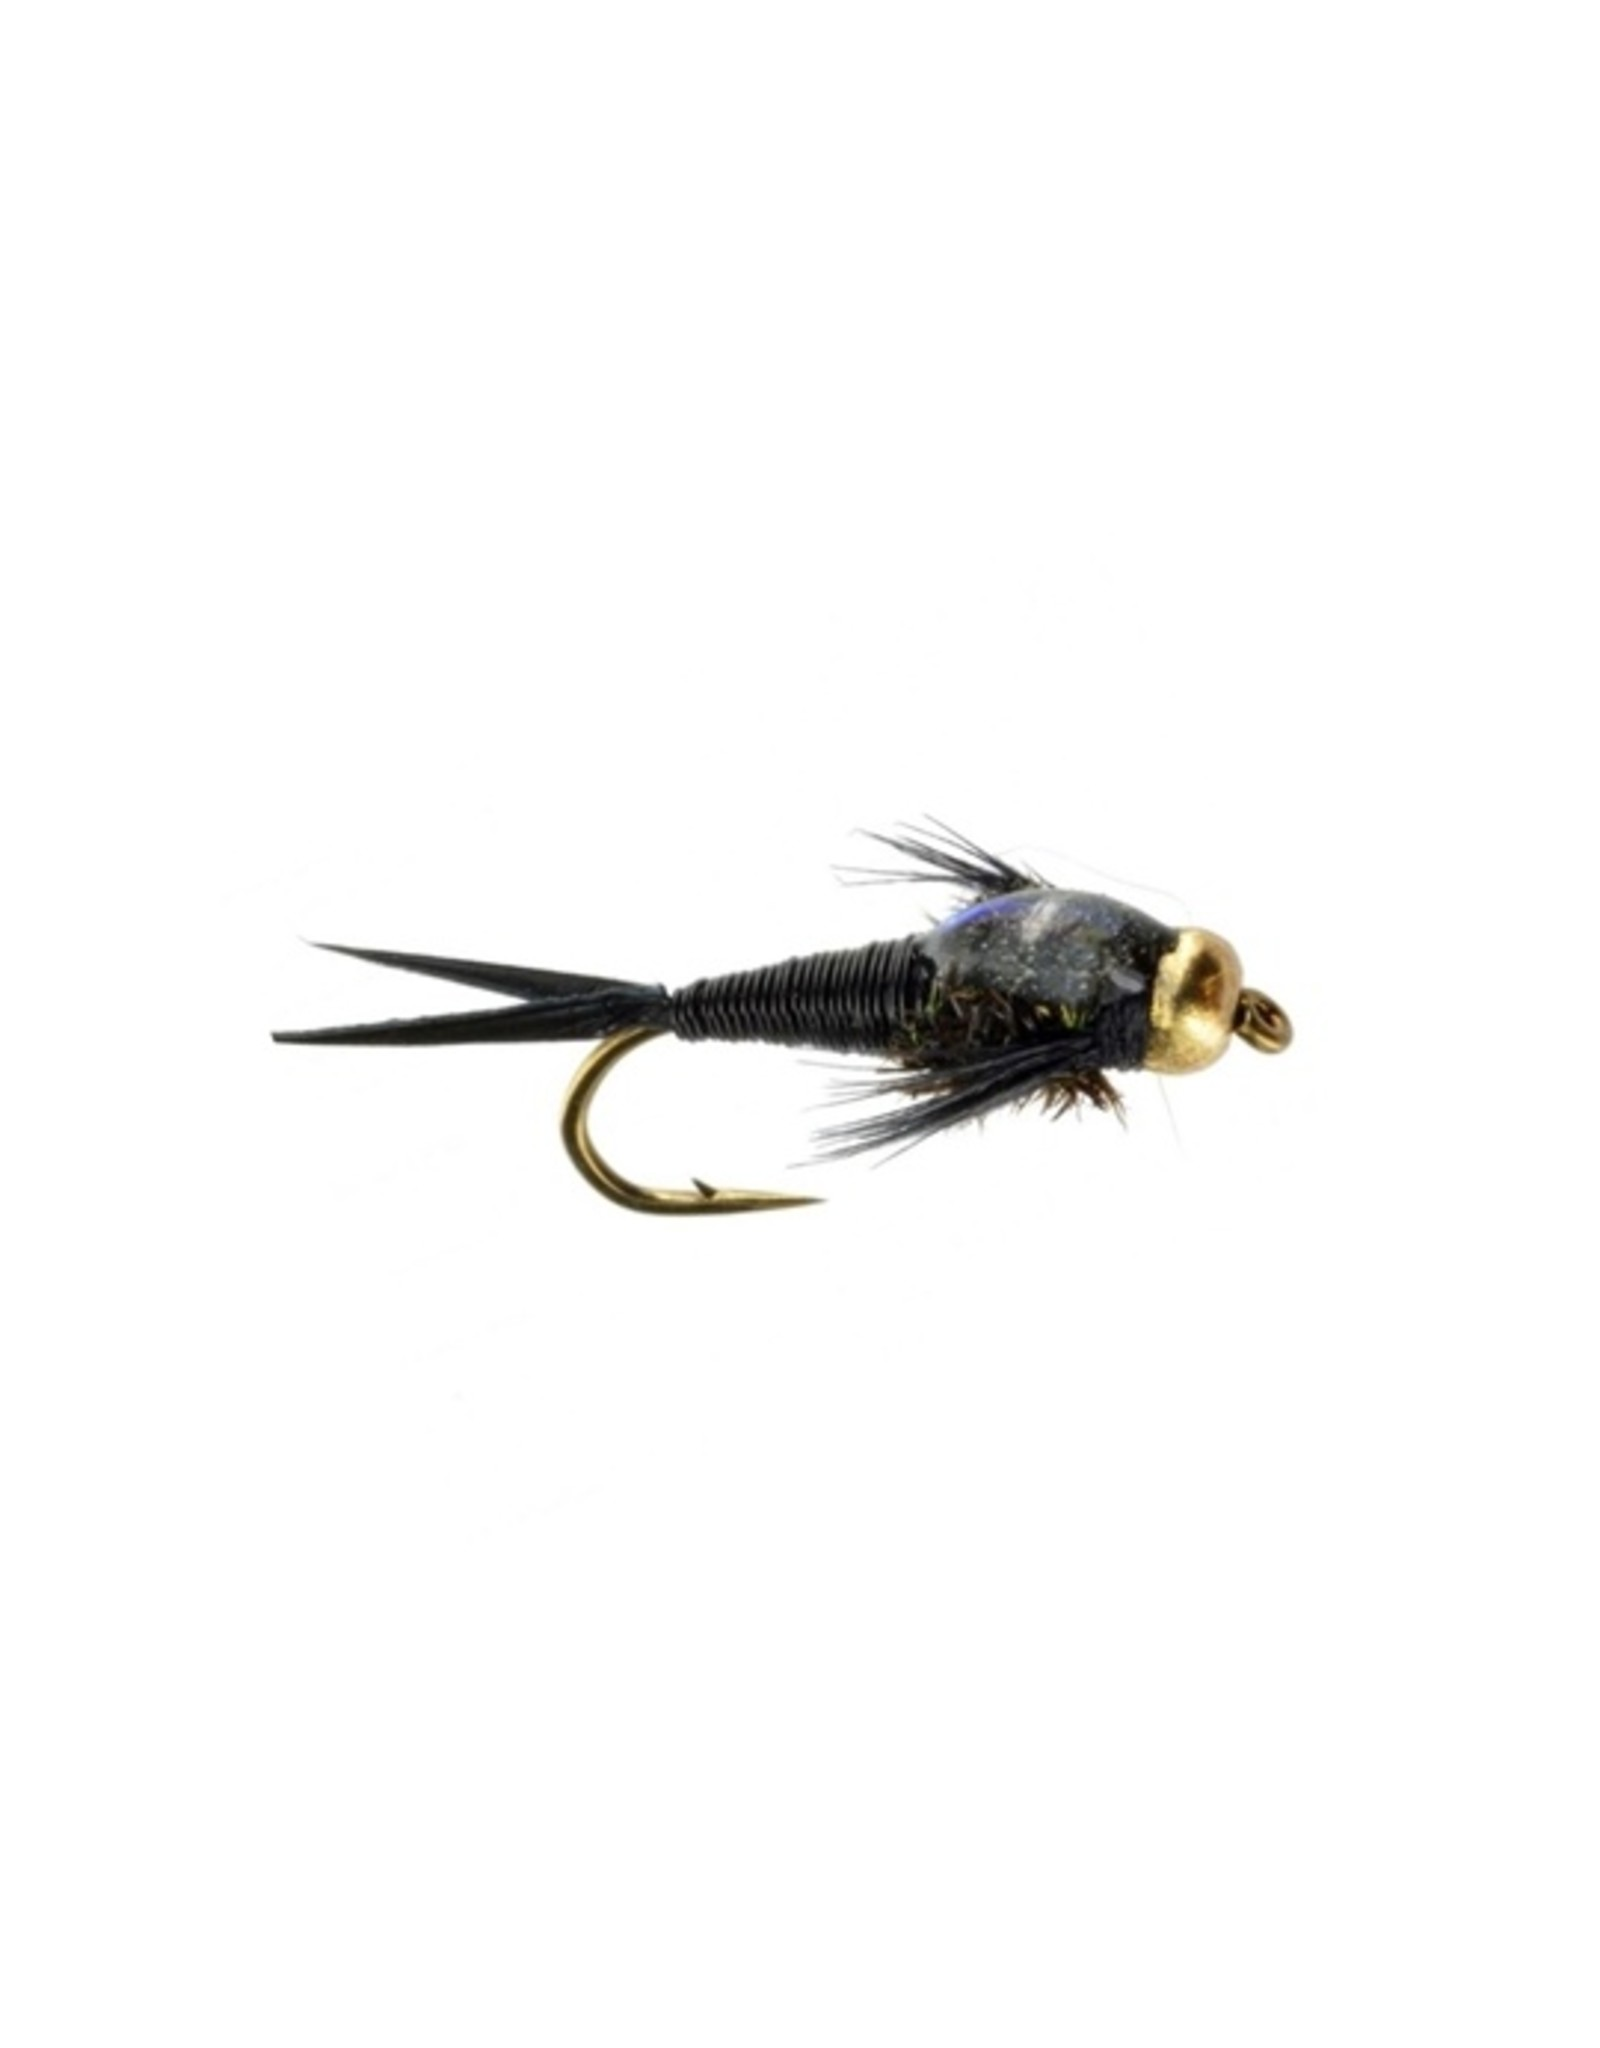 Umpqua Copper John Bead Head (3 Pack)